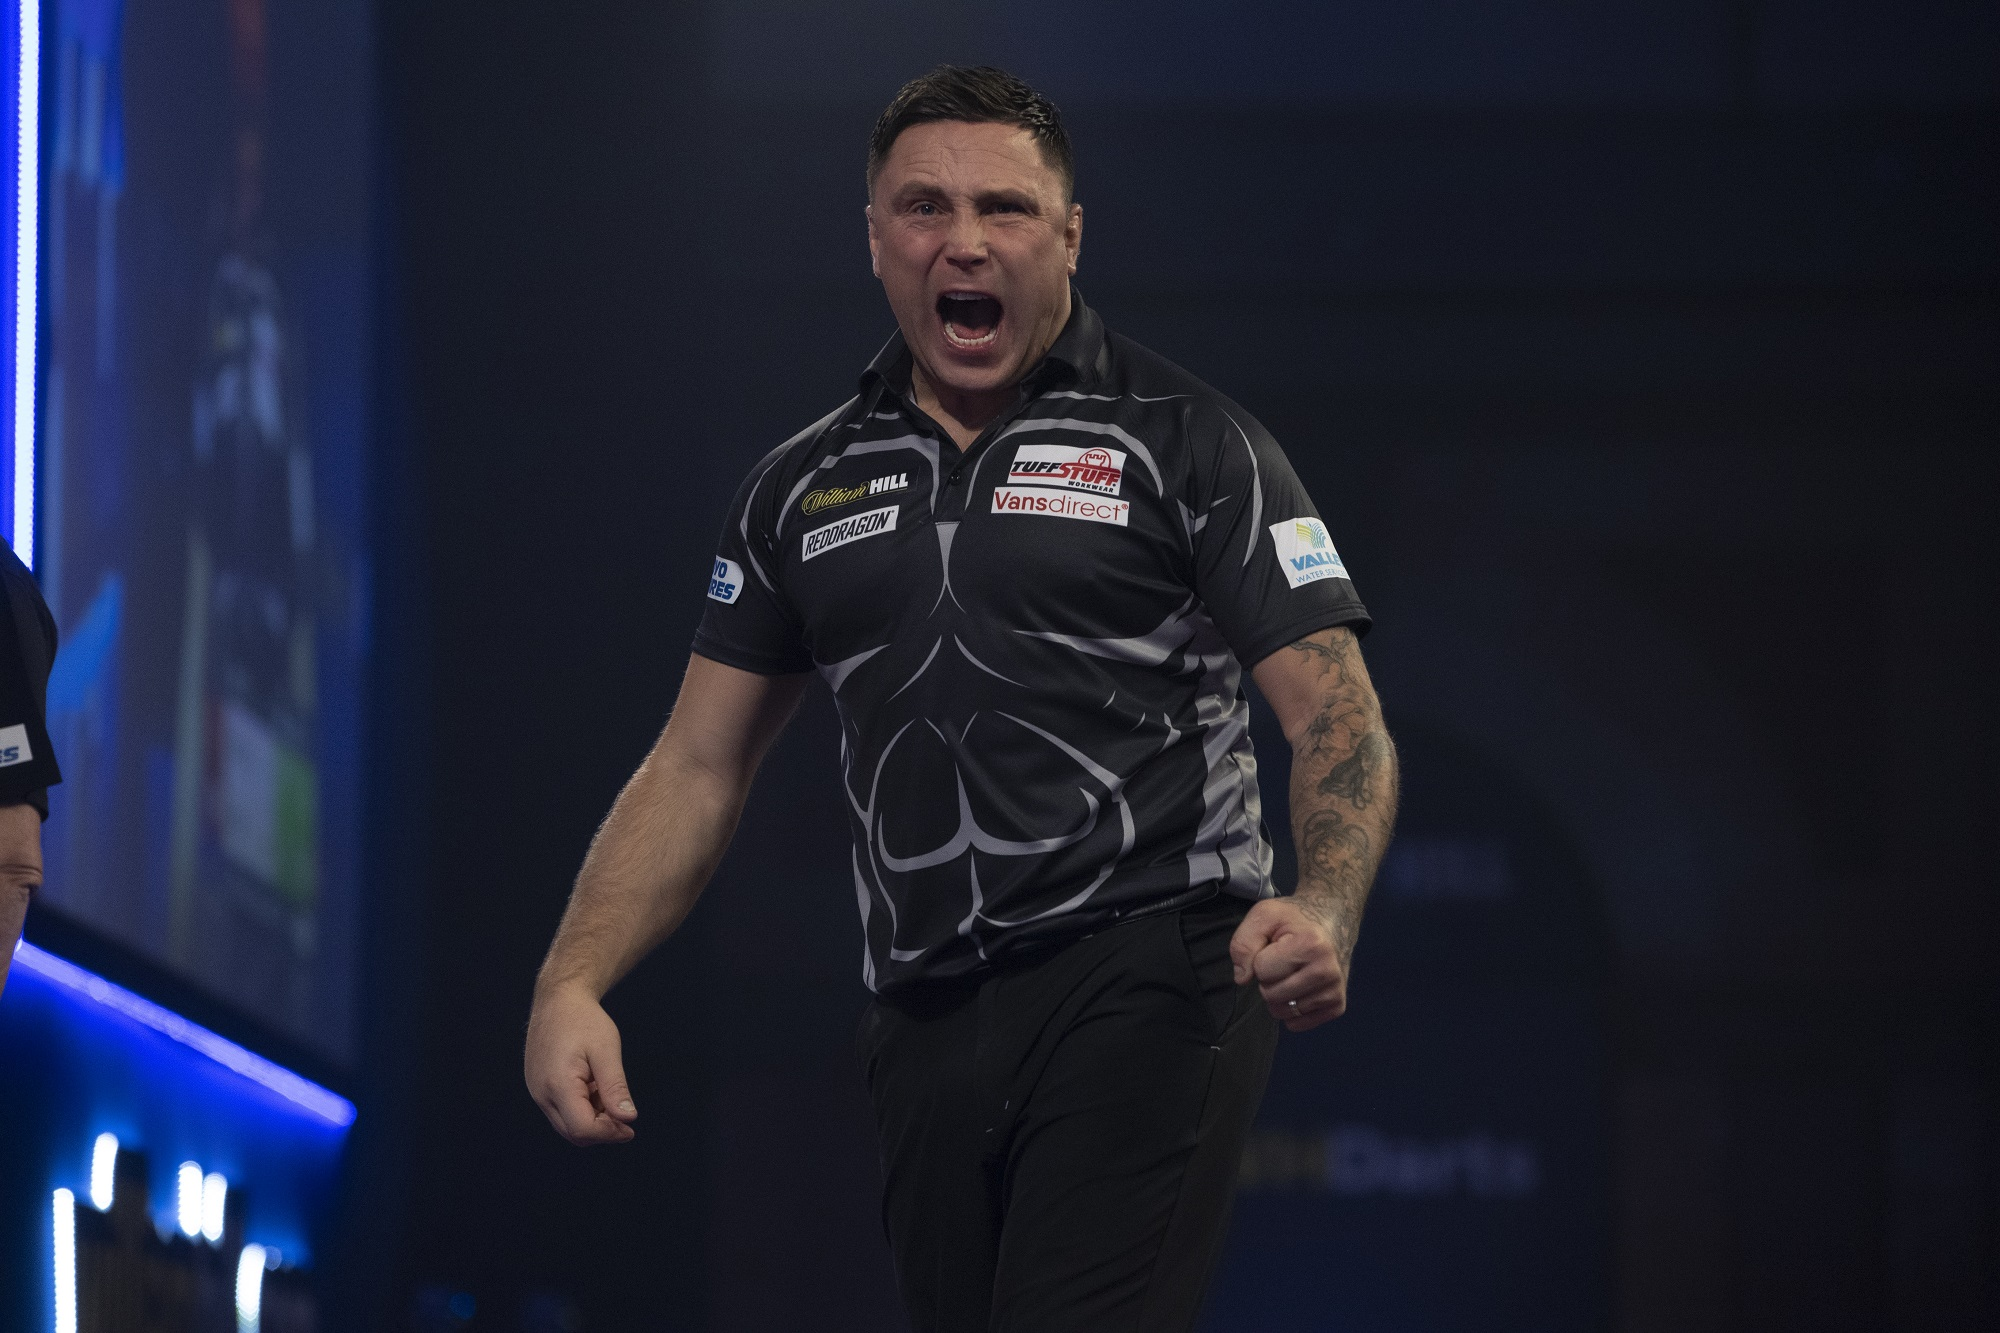 World Championship Final Recommended Bets